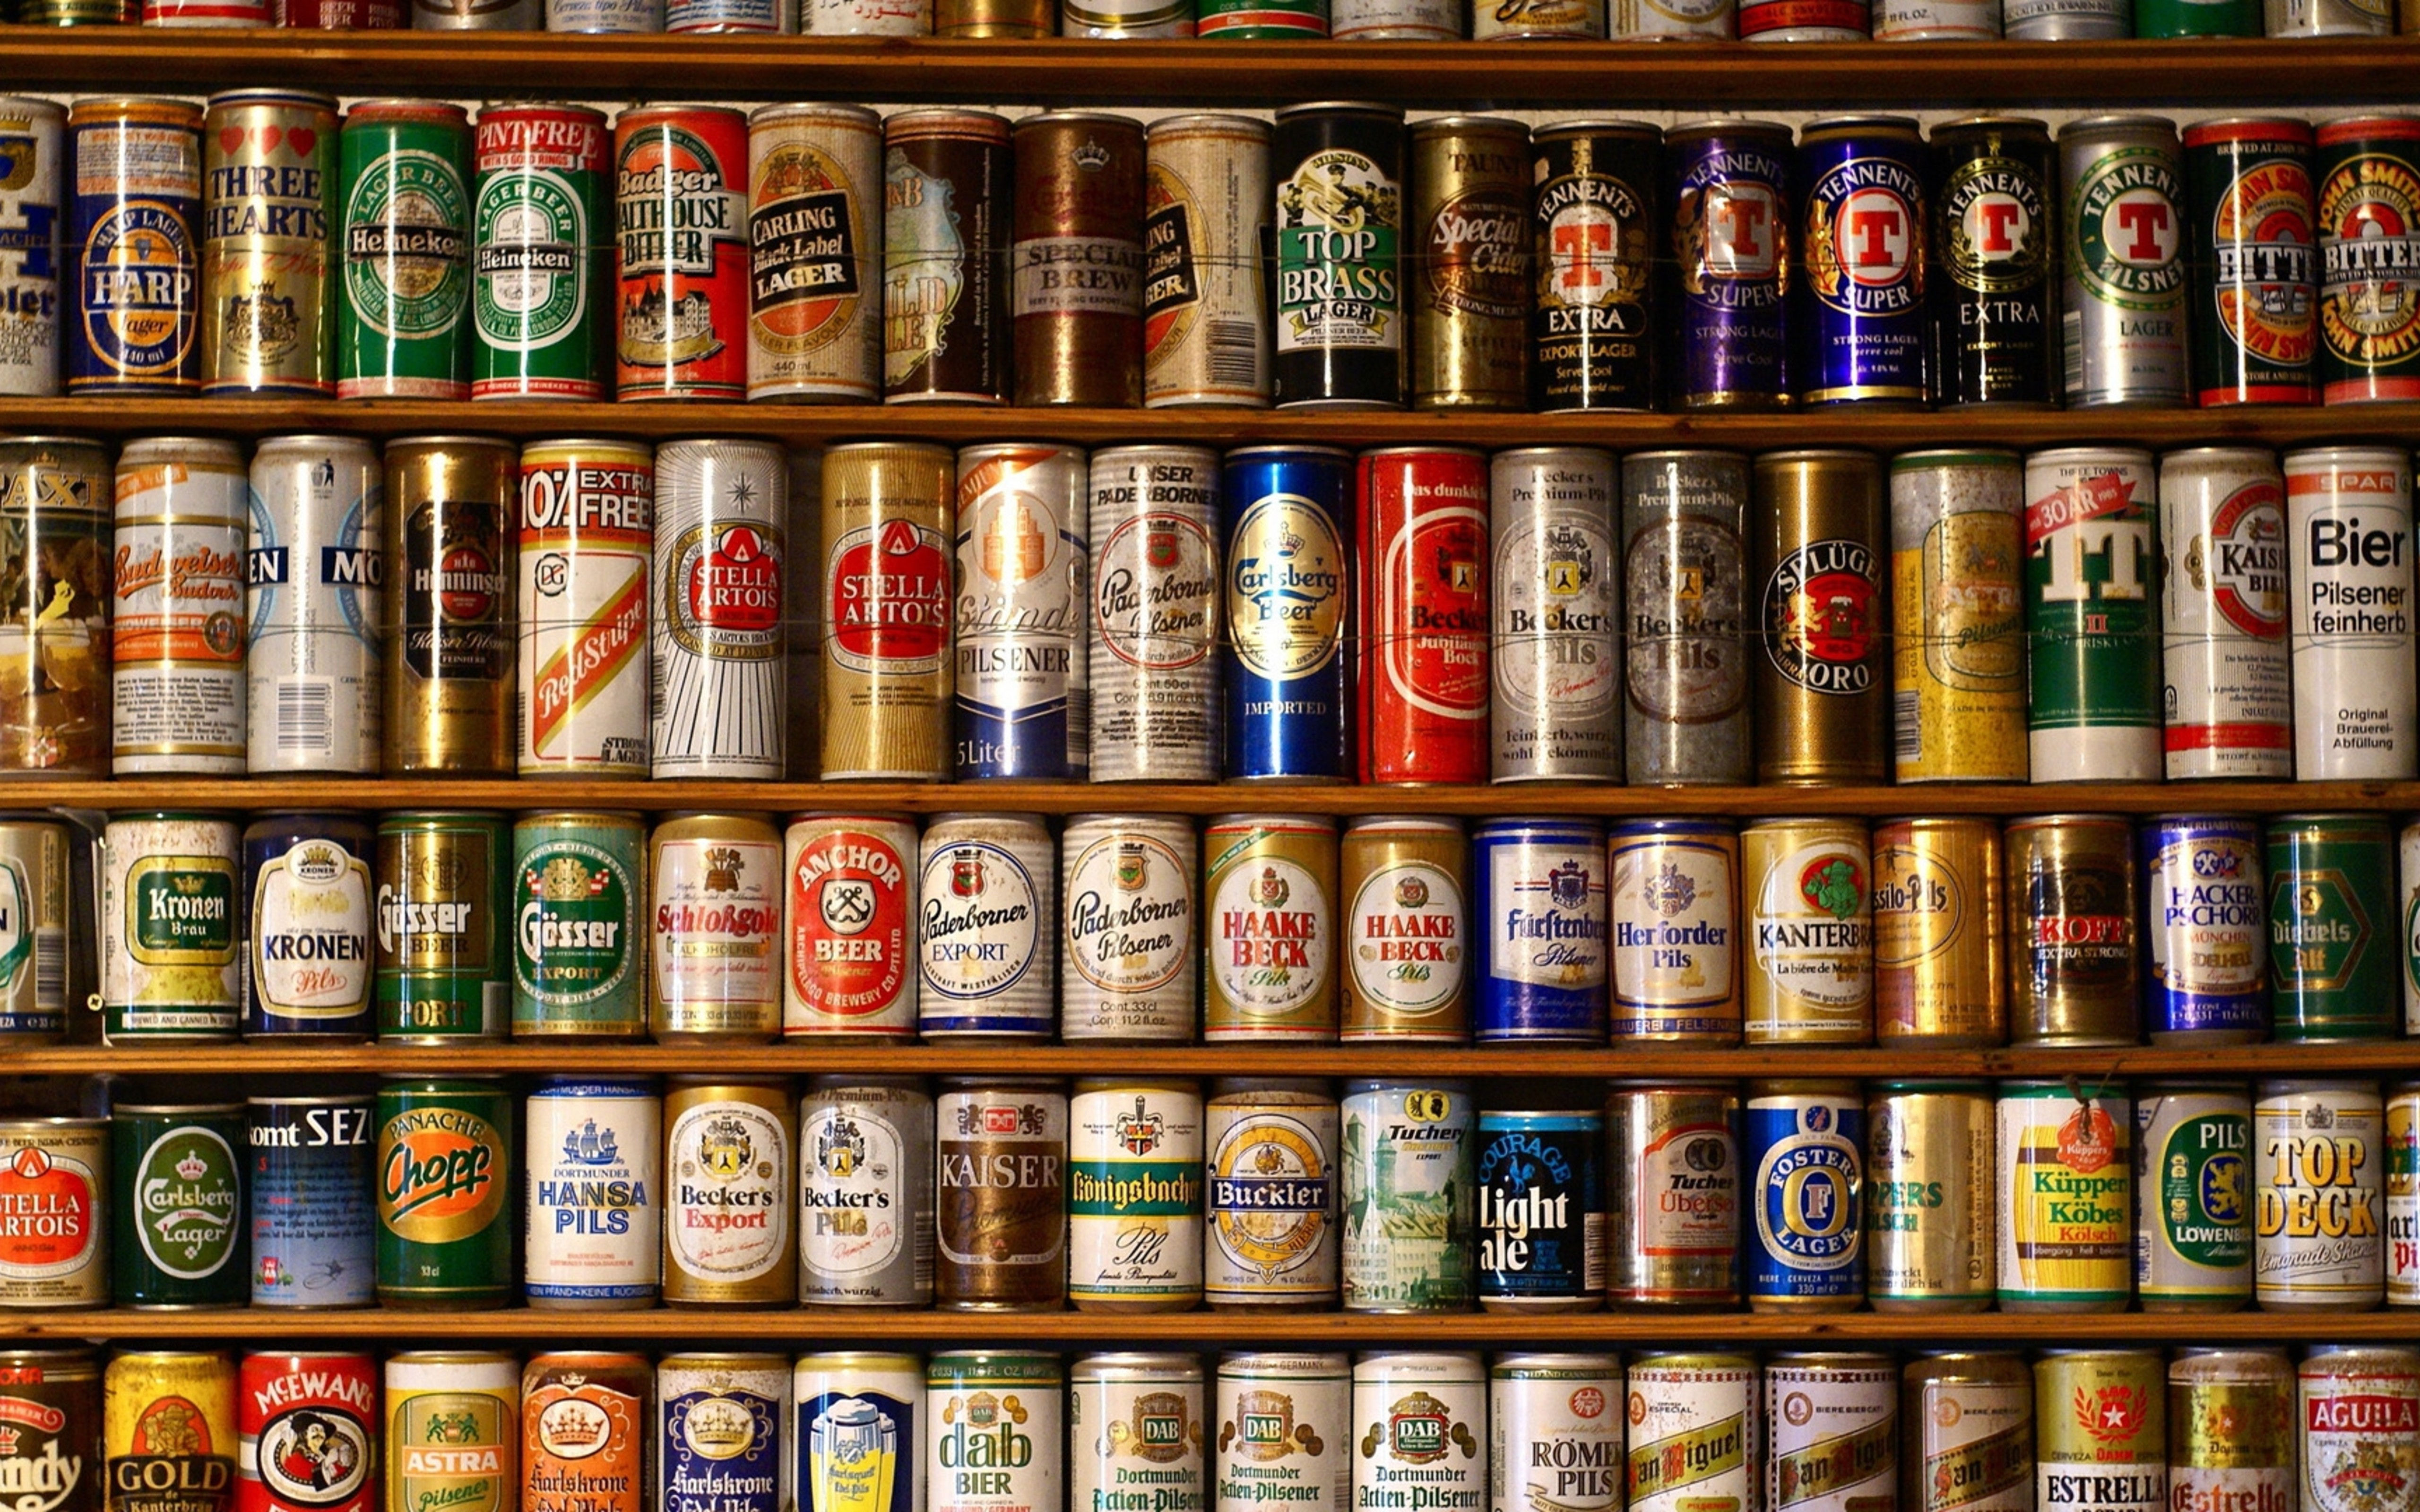 Download-x-A-wall-of-different-brands-of-beer-cans-All-kinds-of-miscellaneous-wal-wallpaper-wp34012076